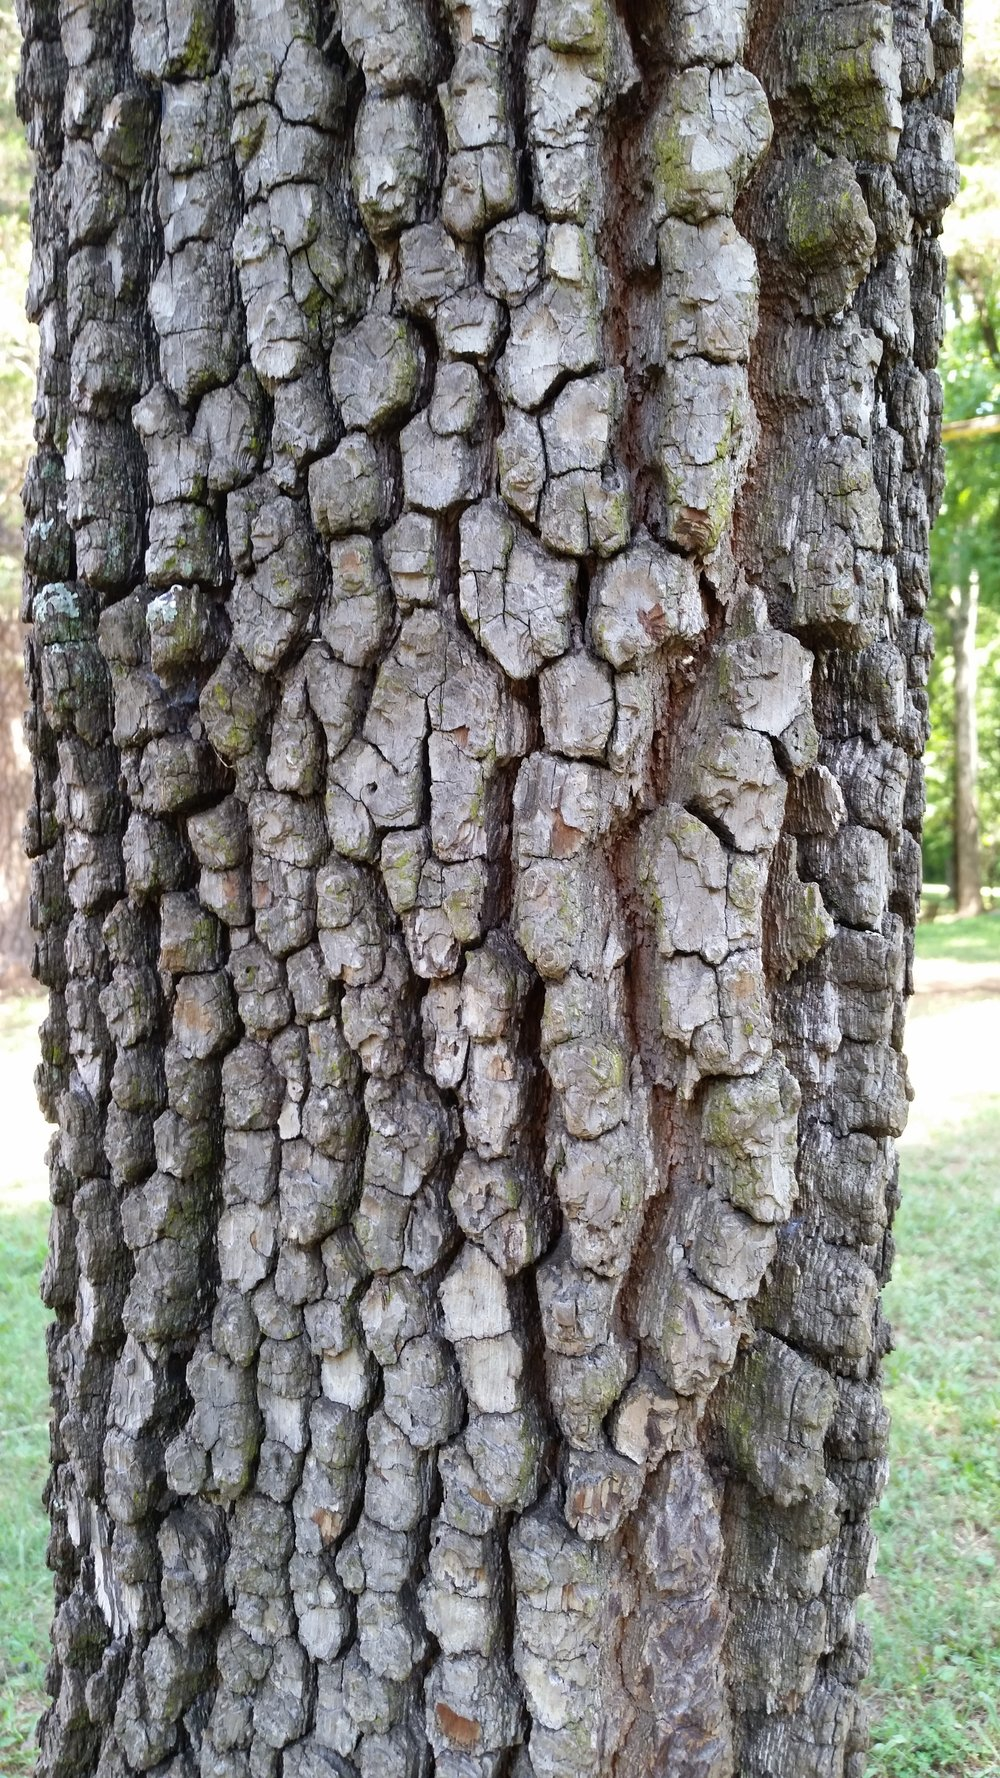 The distinctive fissured bark of a mature native persimmon,  Diospyros virginiana